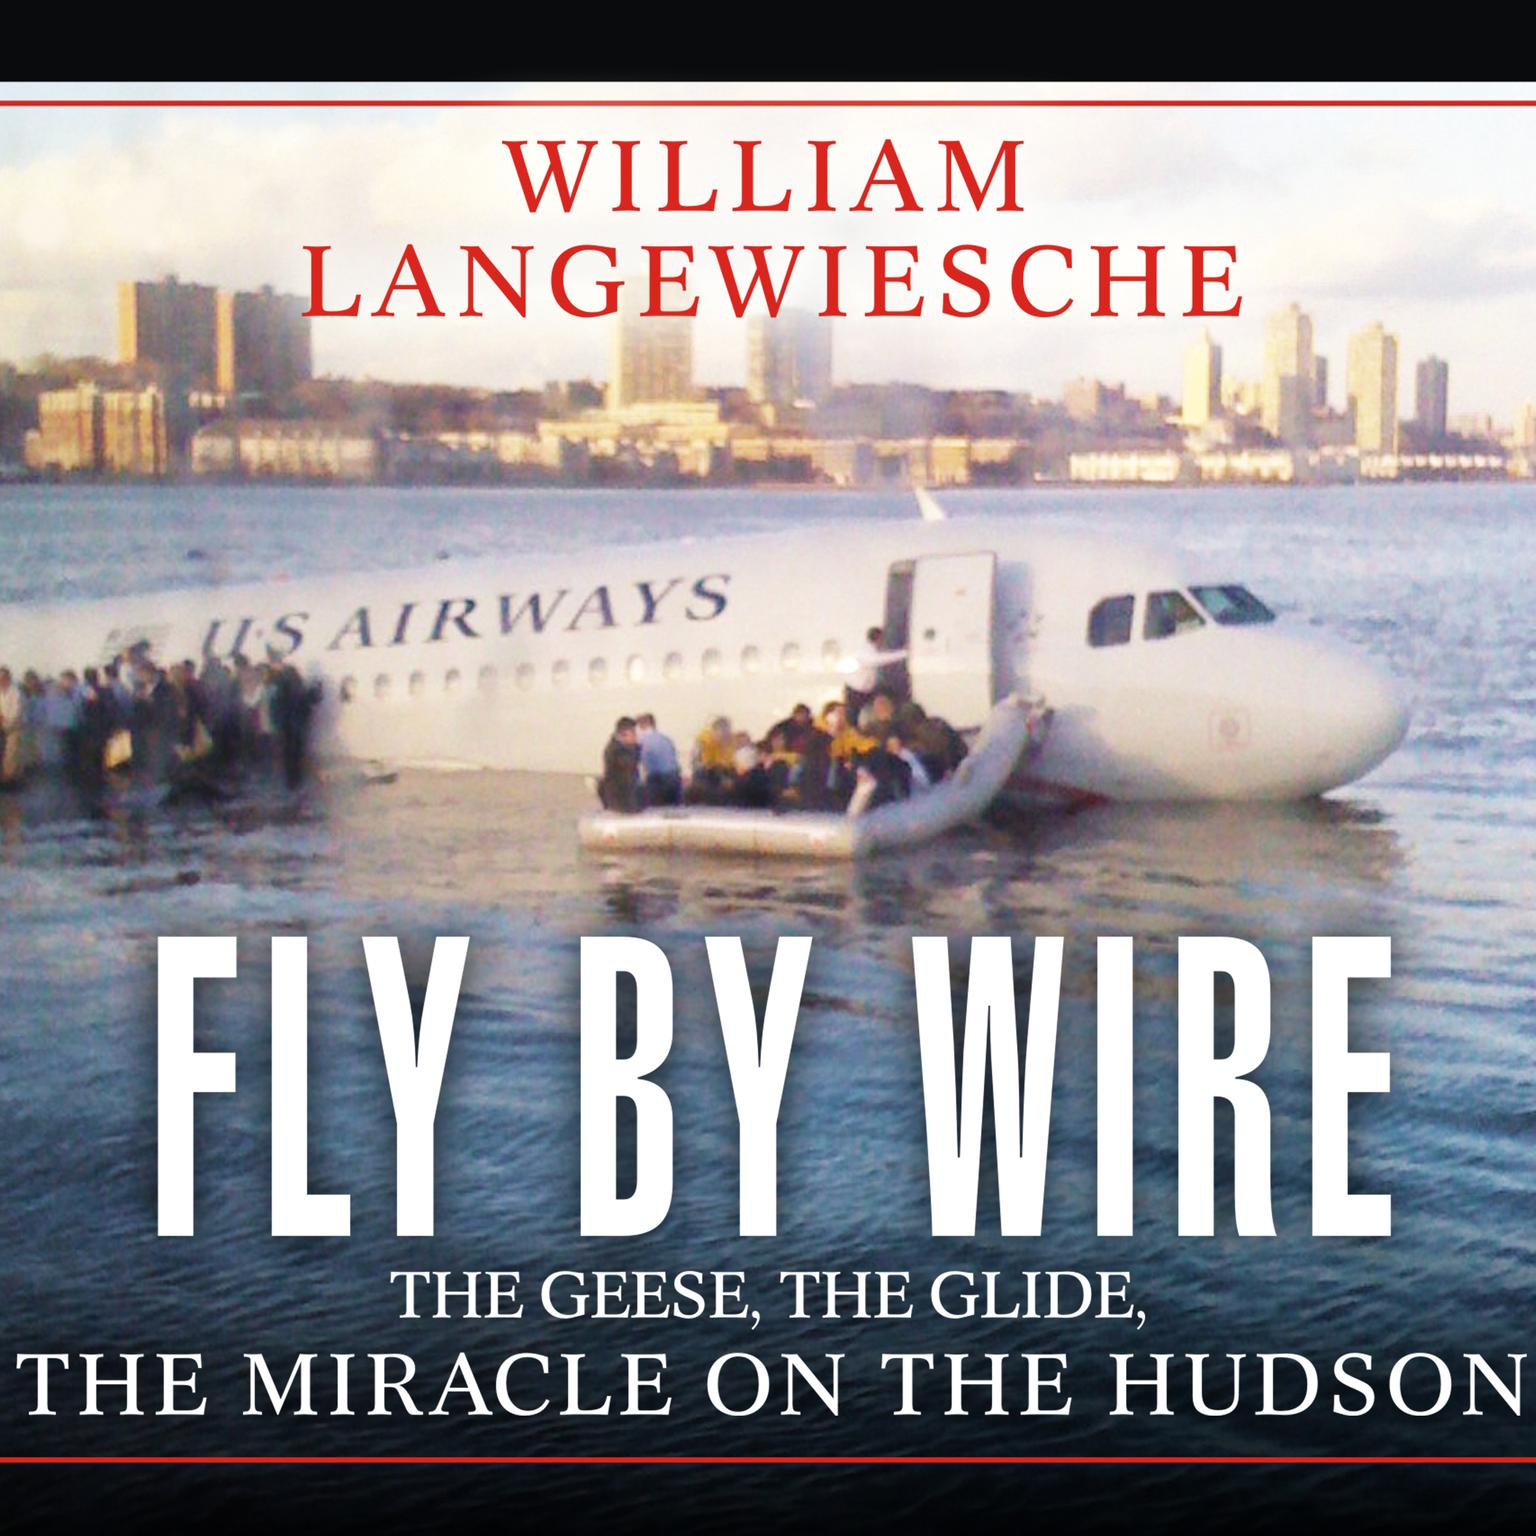 Printable Fly by Wire: The Geese, the Glide, the Miracle on the Hudson Audiobook Cover Art